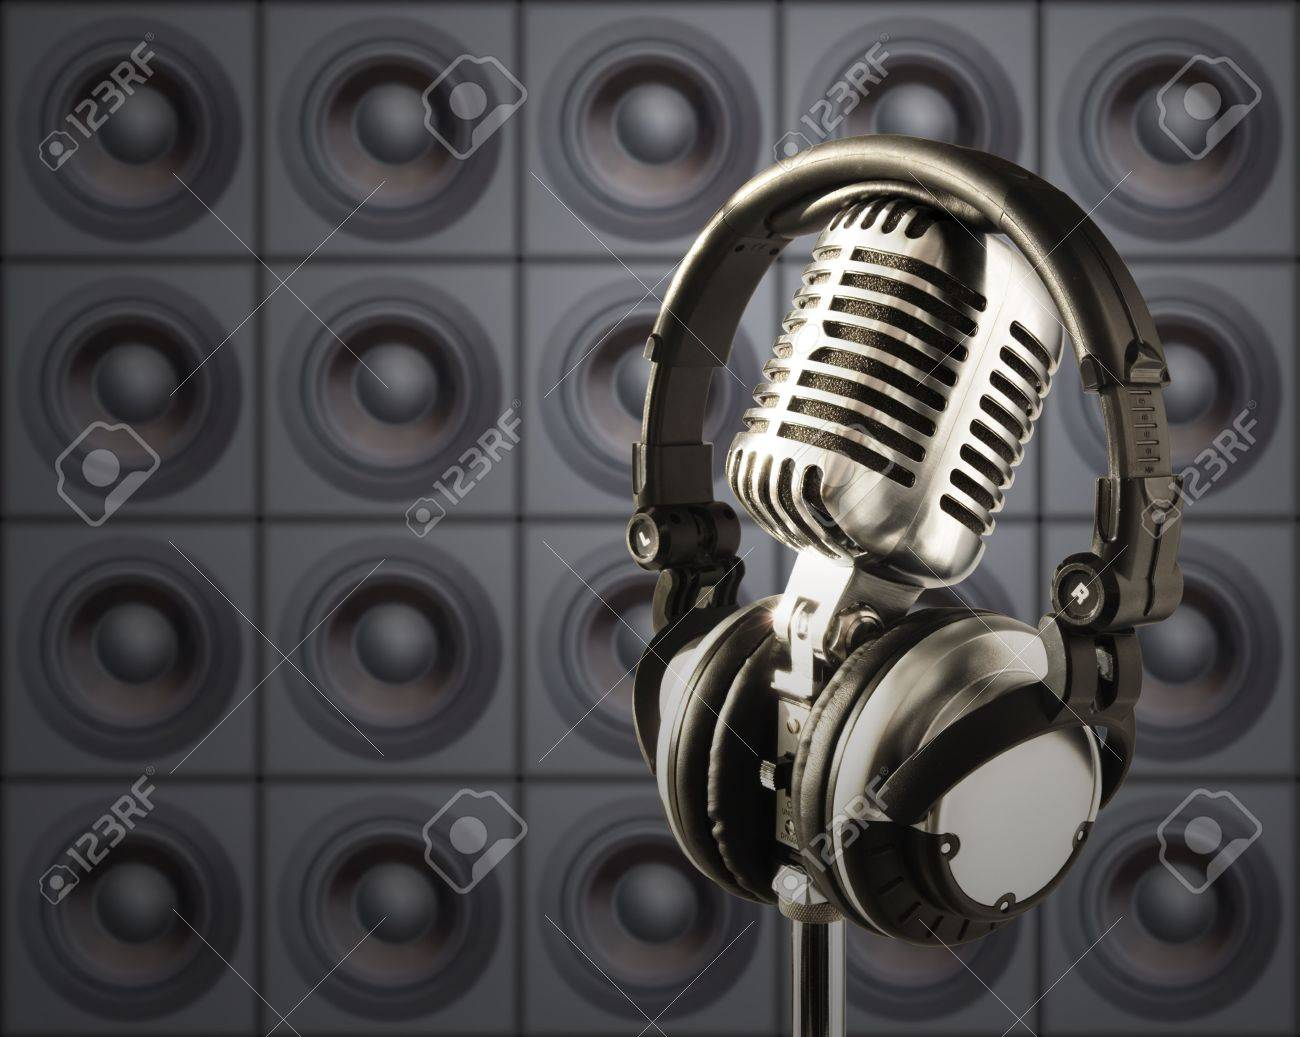 Professional 'Retro' Microphone & DJ Headphones In Spotlight Against The Wall Of Speakers Stock Photo - 633310